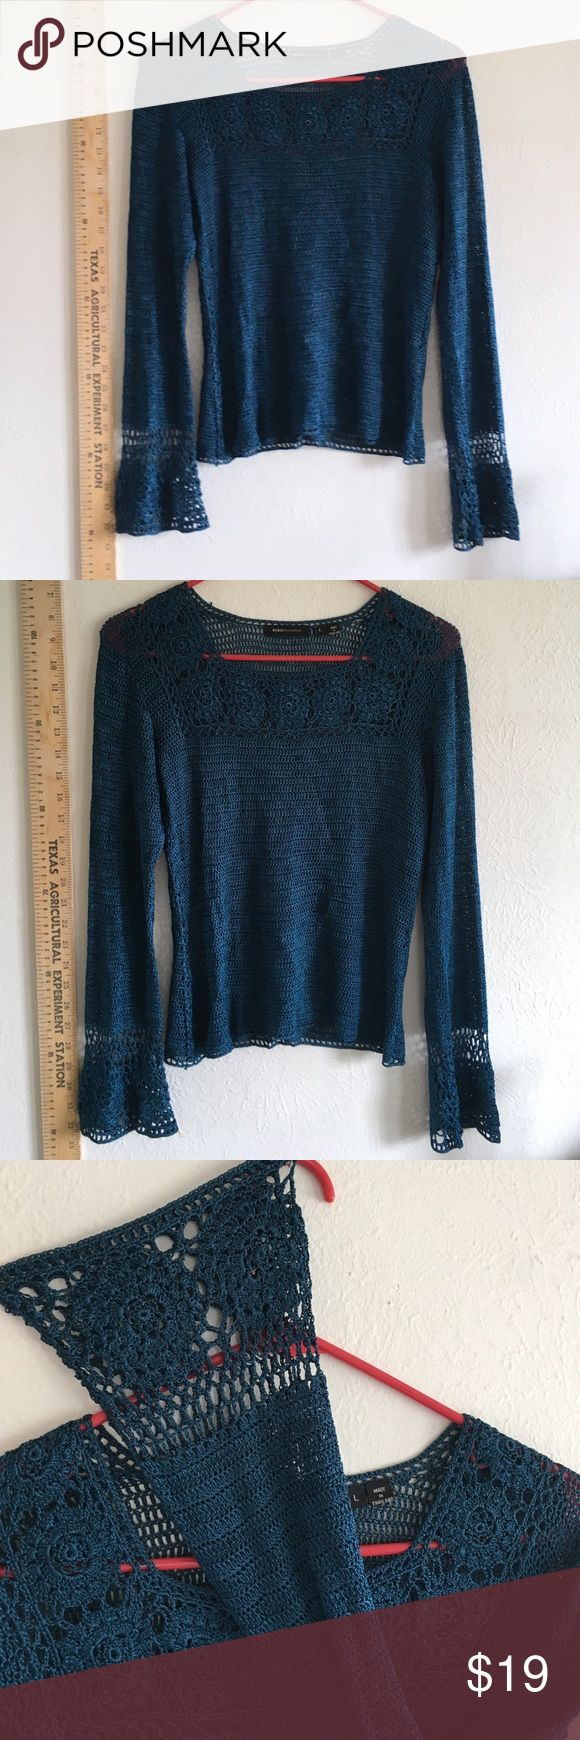 BCBGmaxazria shimmery teal crochet sheer top FAB! Please see photos for measurements. NWOT BCBG maxazria top with gorgeous crochet lace and flowing sleeves. Size large 100% rayon. Never worn . Last photo has white tank under Shirt so that you can see some detail if the crochet ! BCBGMaxAzria Tops Tunics